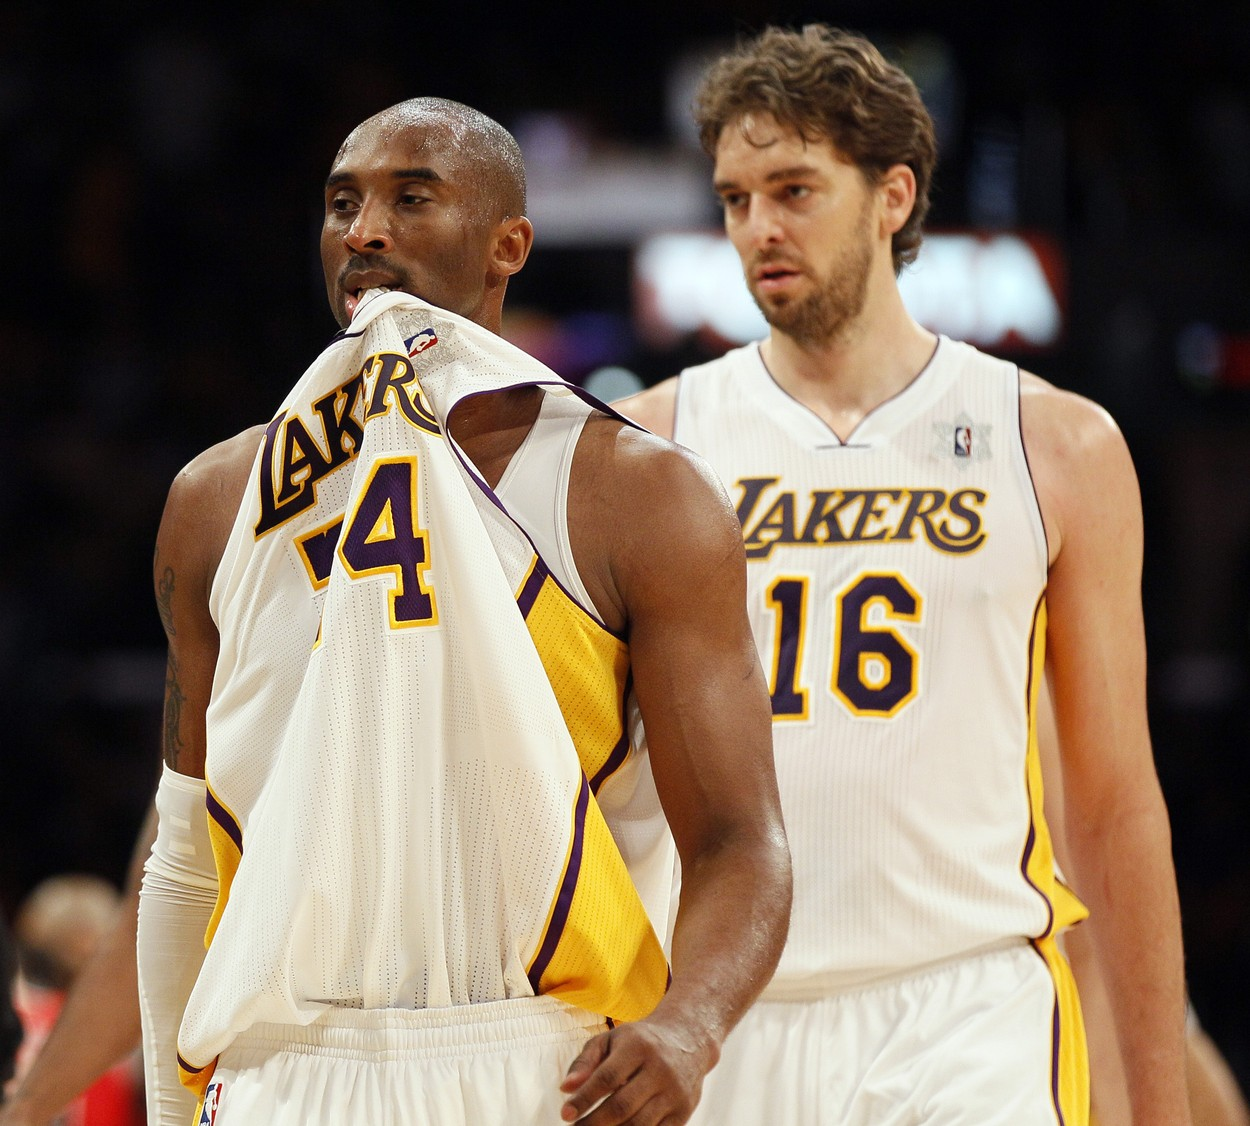 Los Angeles Lakers shooting guard Kobe Bryant (24) and Pau Gasol walk off the court in a timeout against the Chicago Bulls in the first half of their NBA basketball game in Los Angeles on December 25, 2011.,Image: 111032157, License: Rights-managed, Restrictions: , Model Release: no, Credit line: LORI SHEPLER / UPI / Profimedia